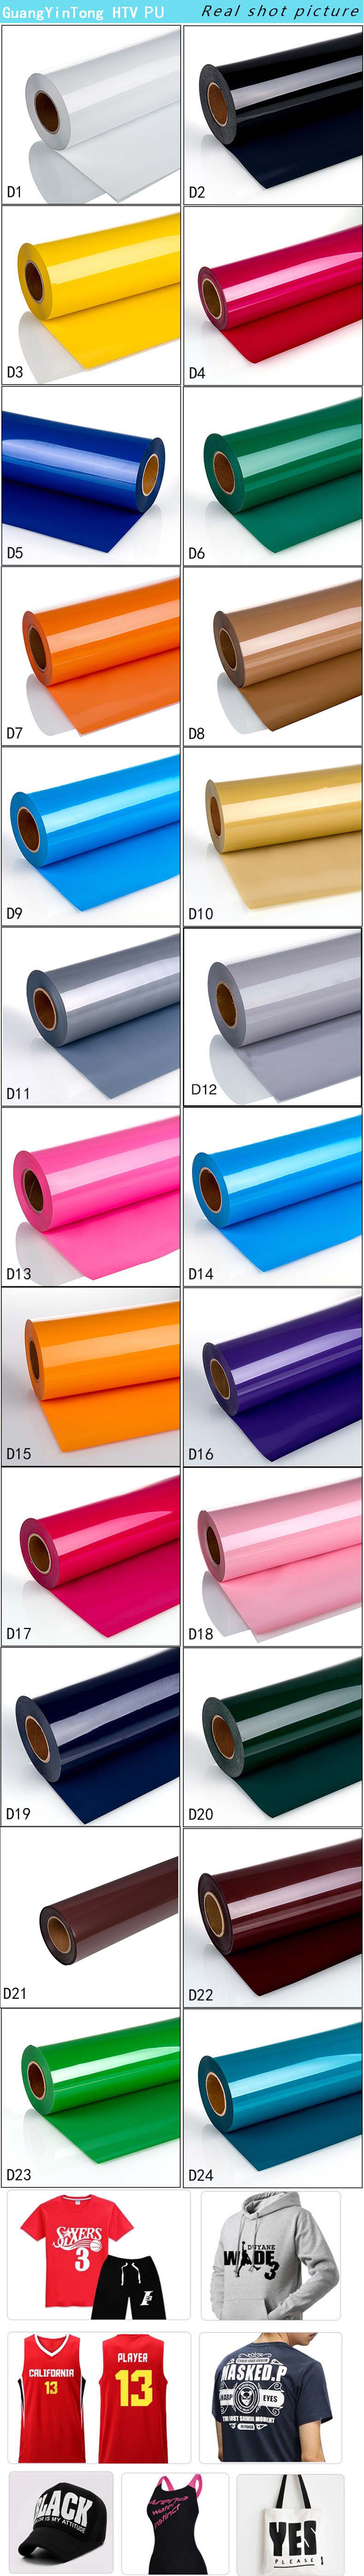 Guangyintong High Quality PU Flex PU Heat Transfer Film Easyweed Vinyl korea 25M